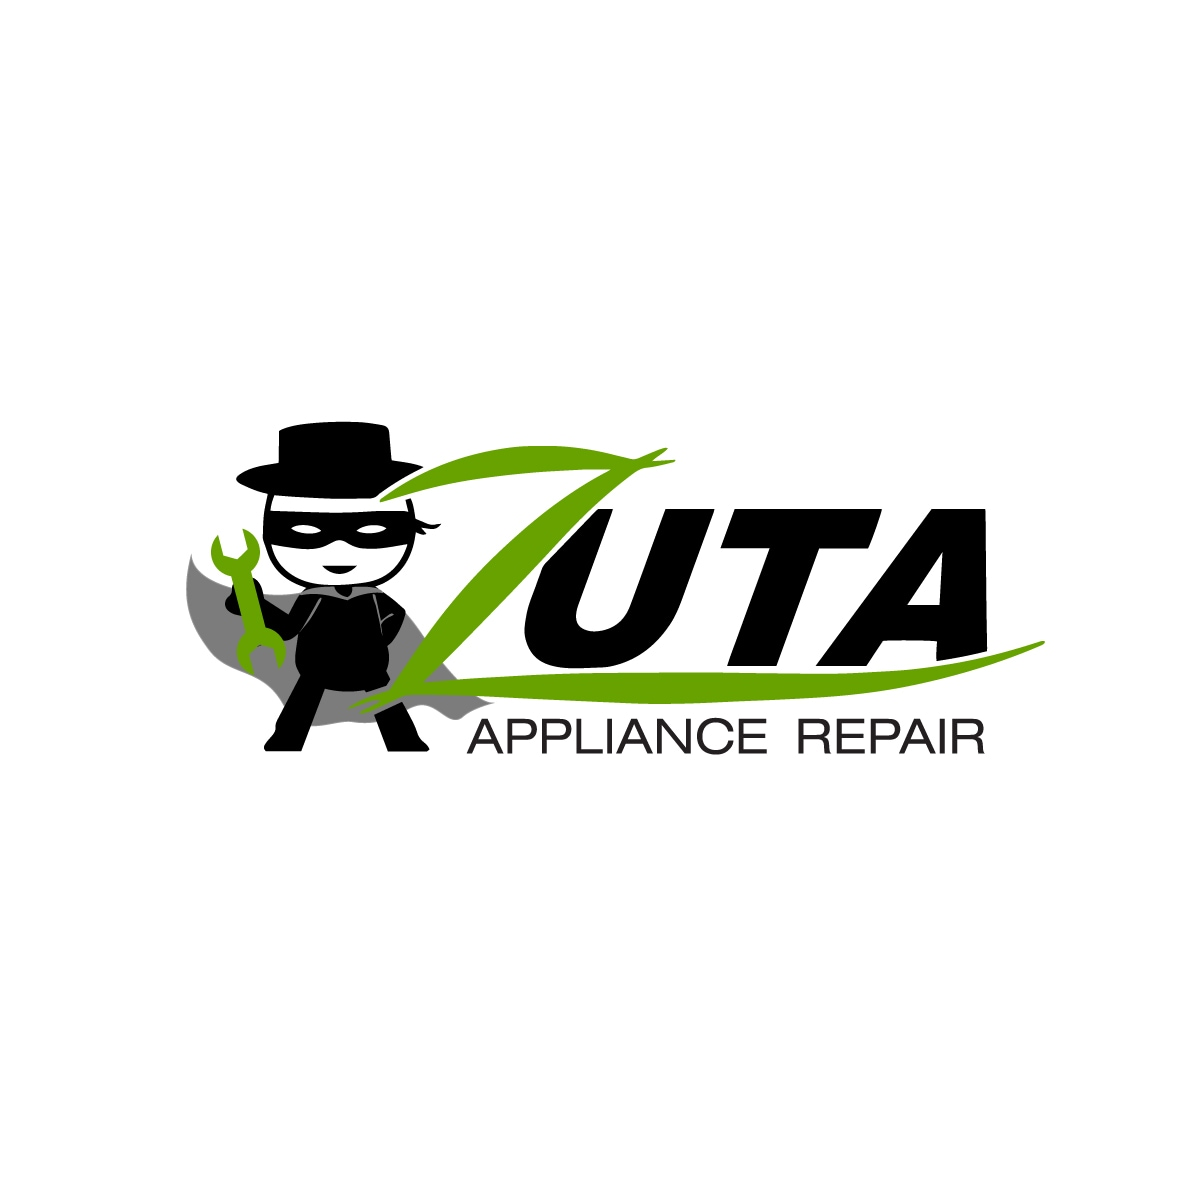 Zuta Appliance Repair